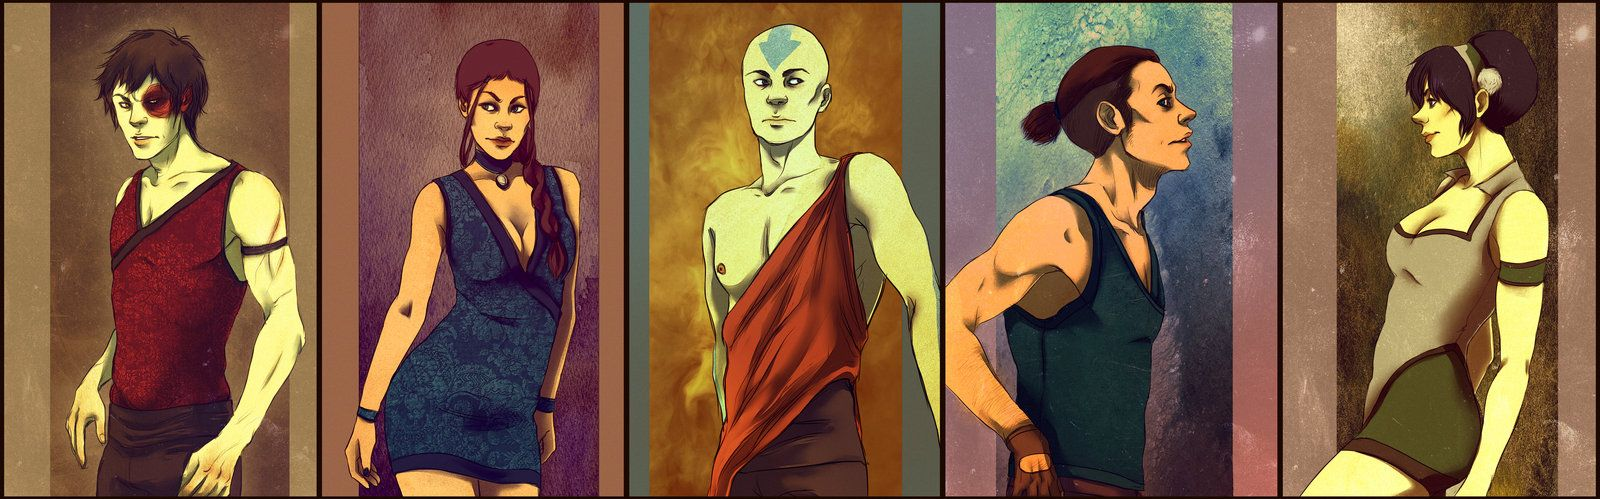 Avatar the last airbender girl characters naked, three men fuck teen